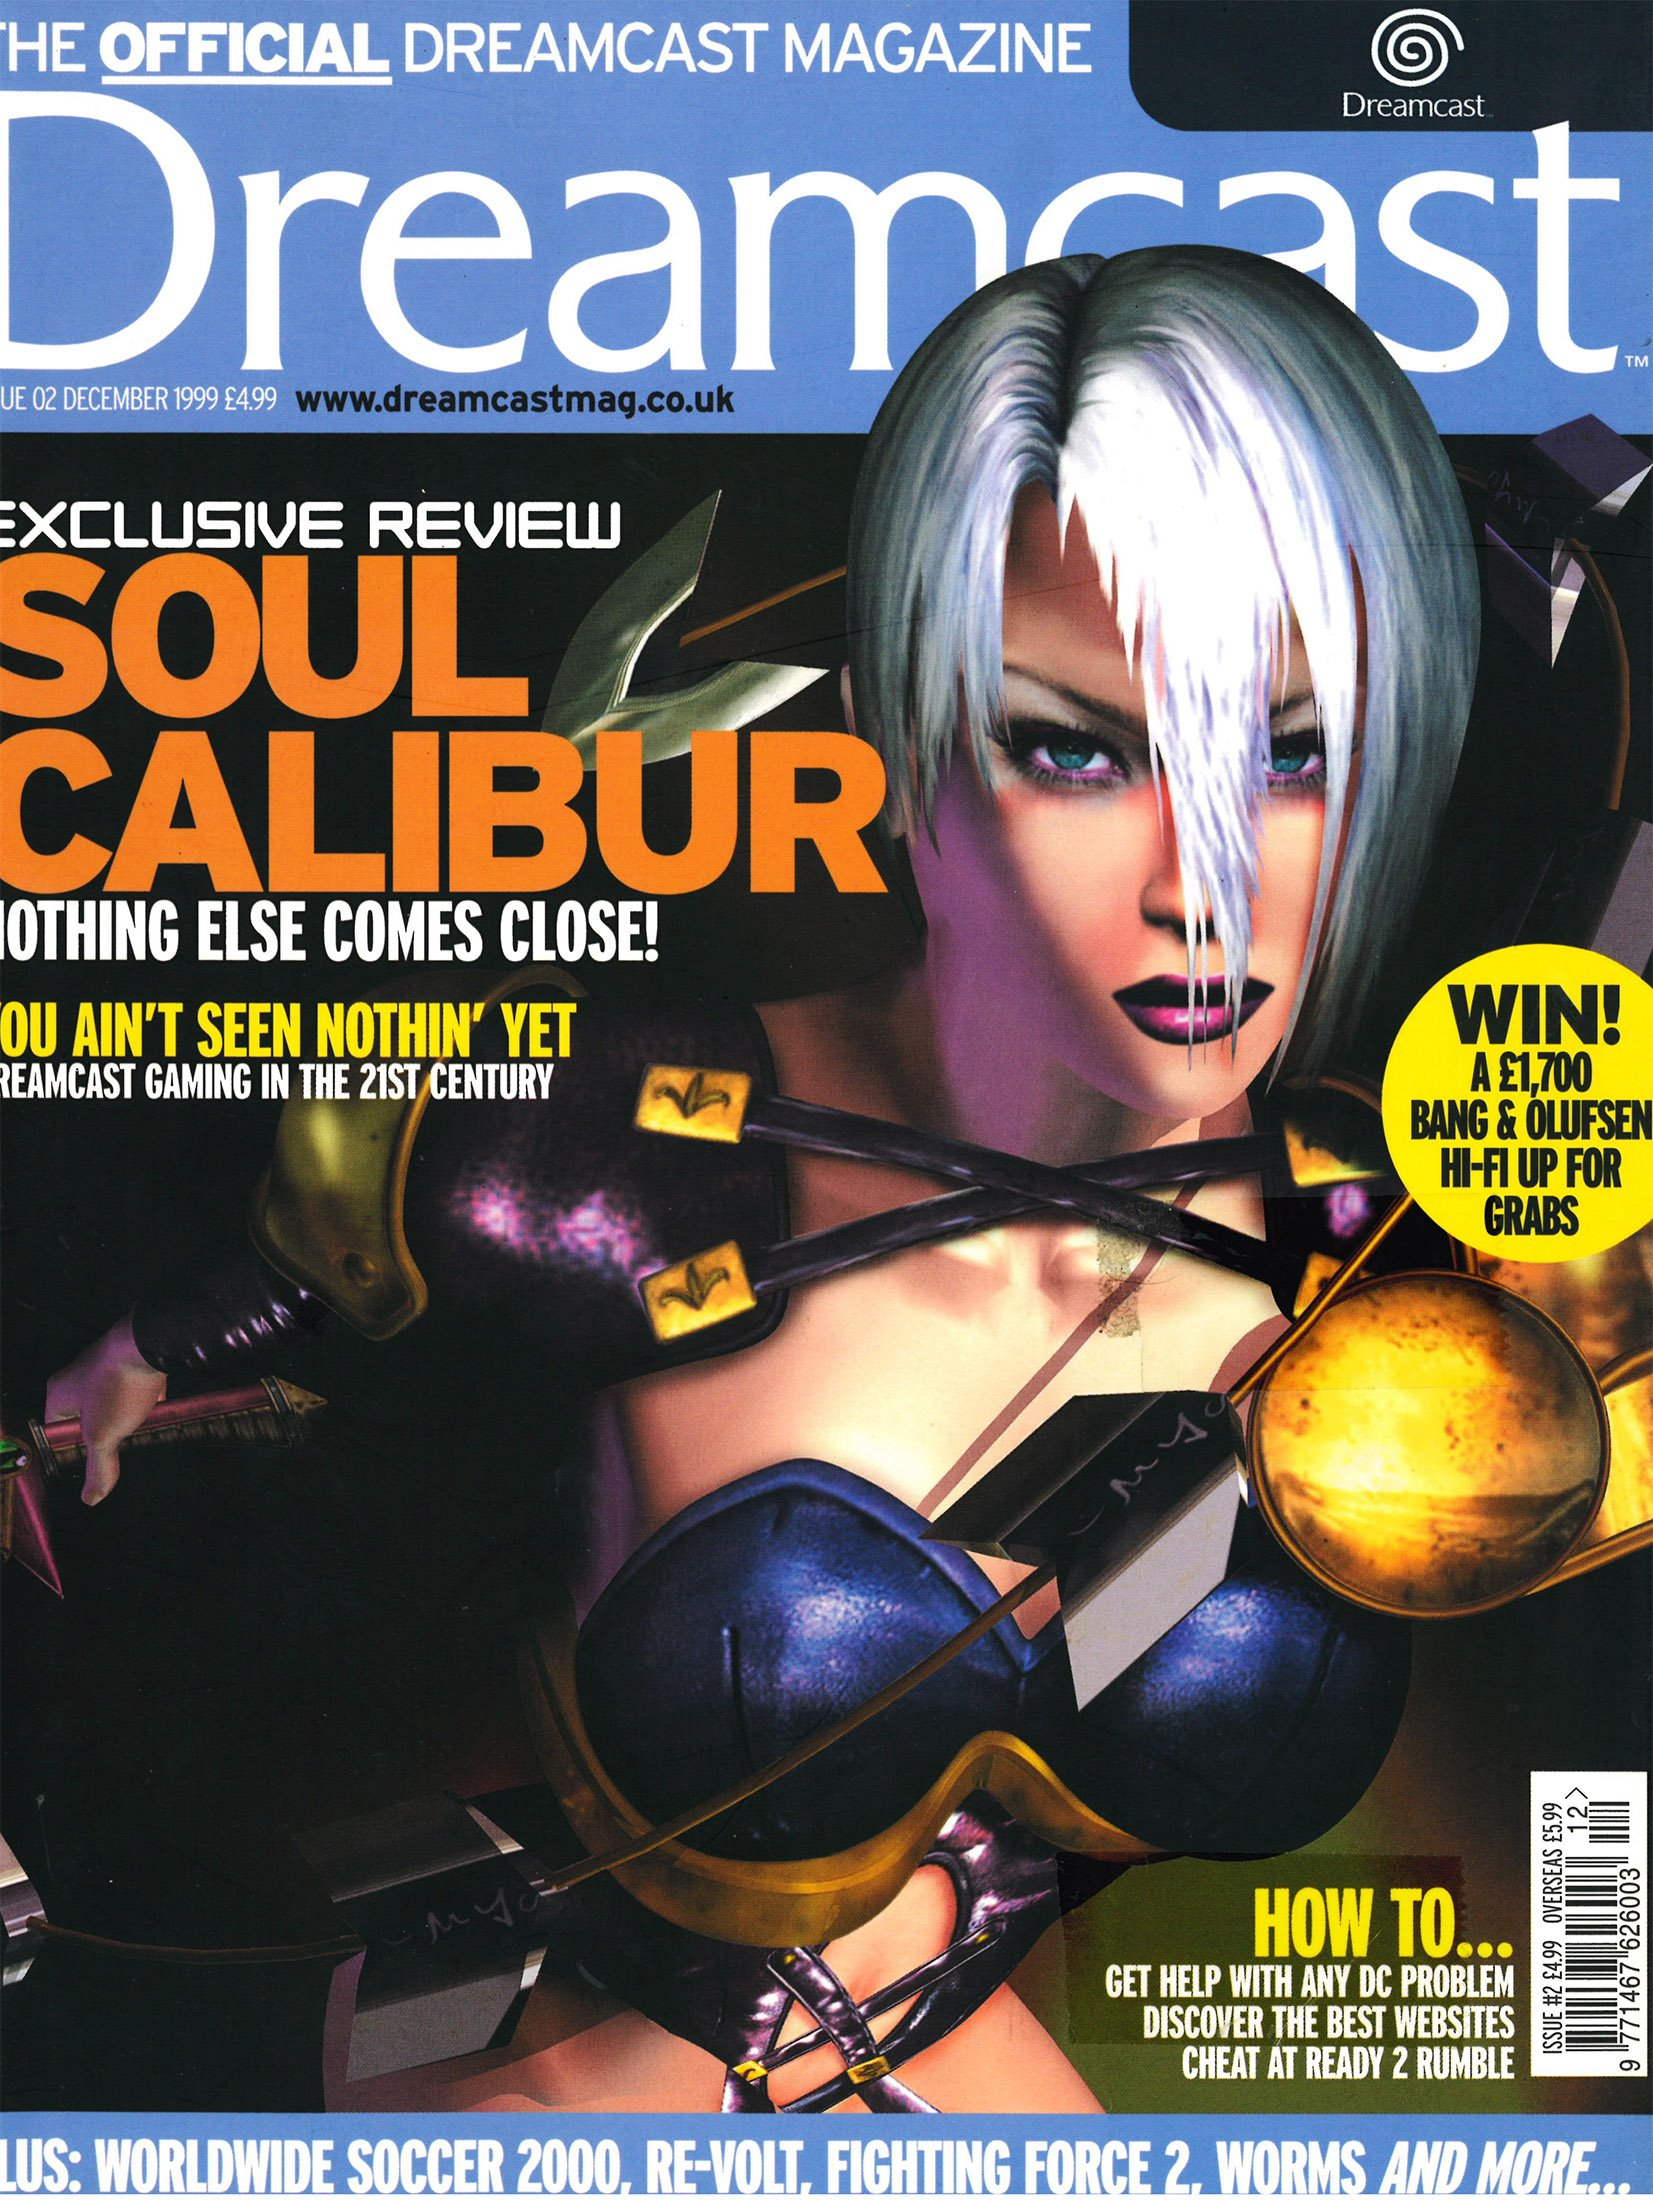 Official Dreamcast Magazine 02 (December 1999)